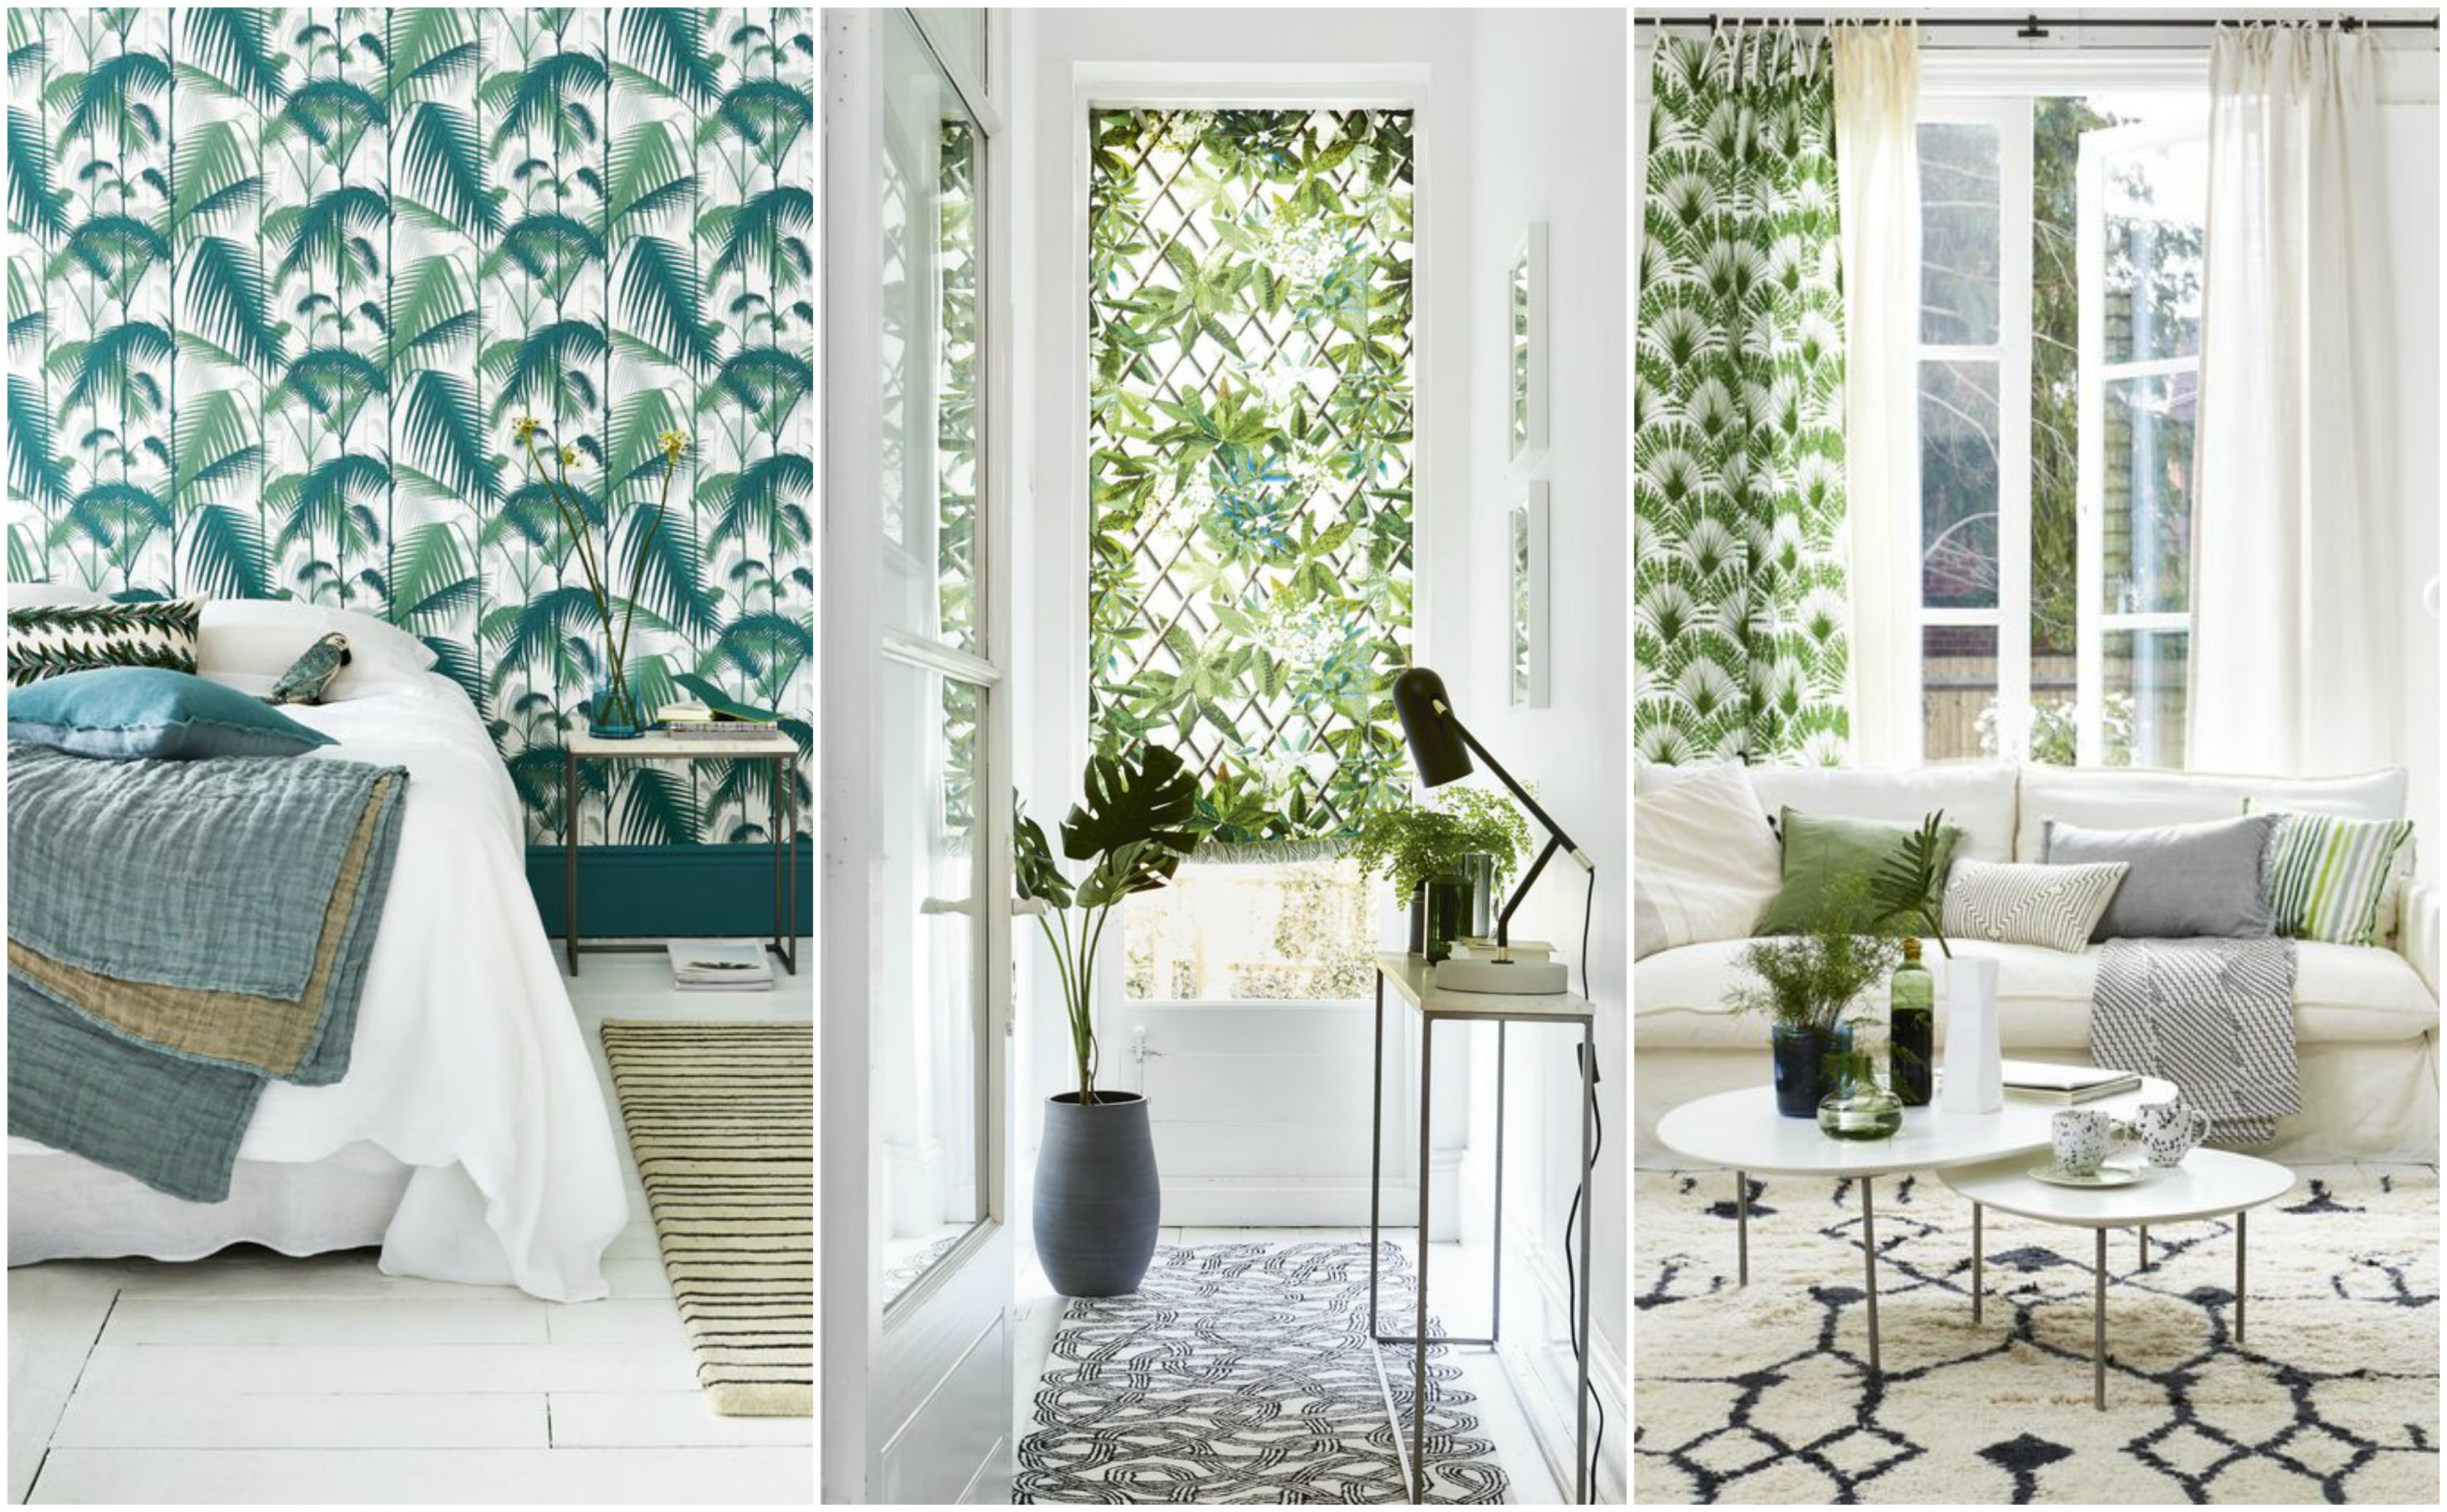 7 ways to decorate with leafy prints and bold botanical patterns at home